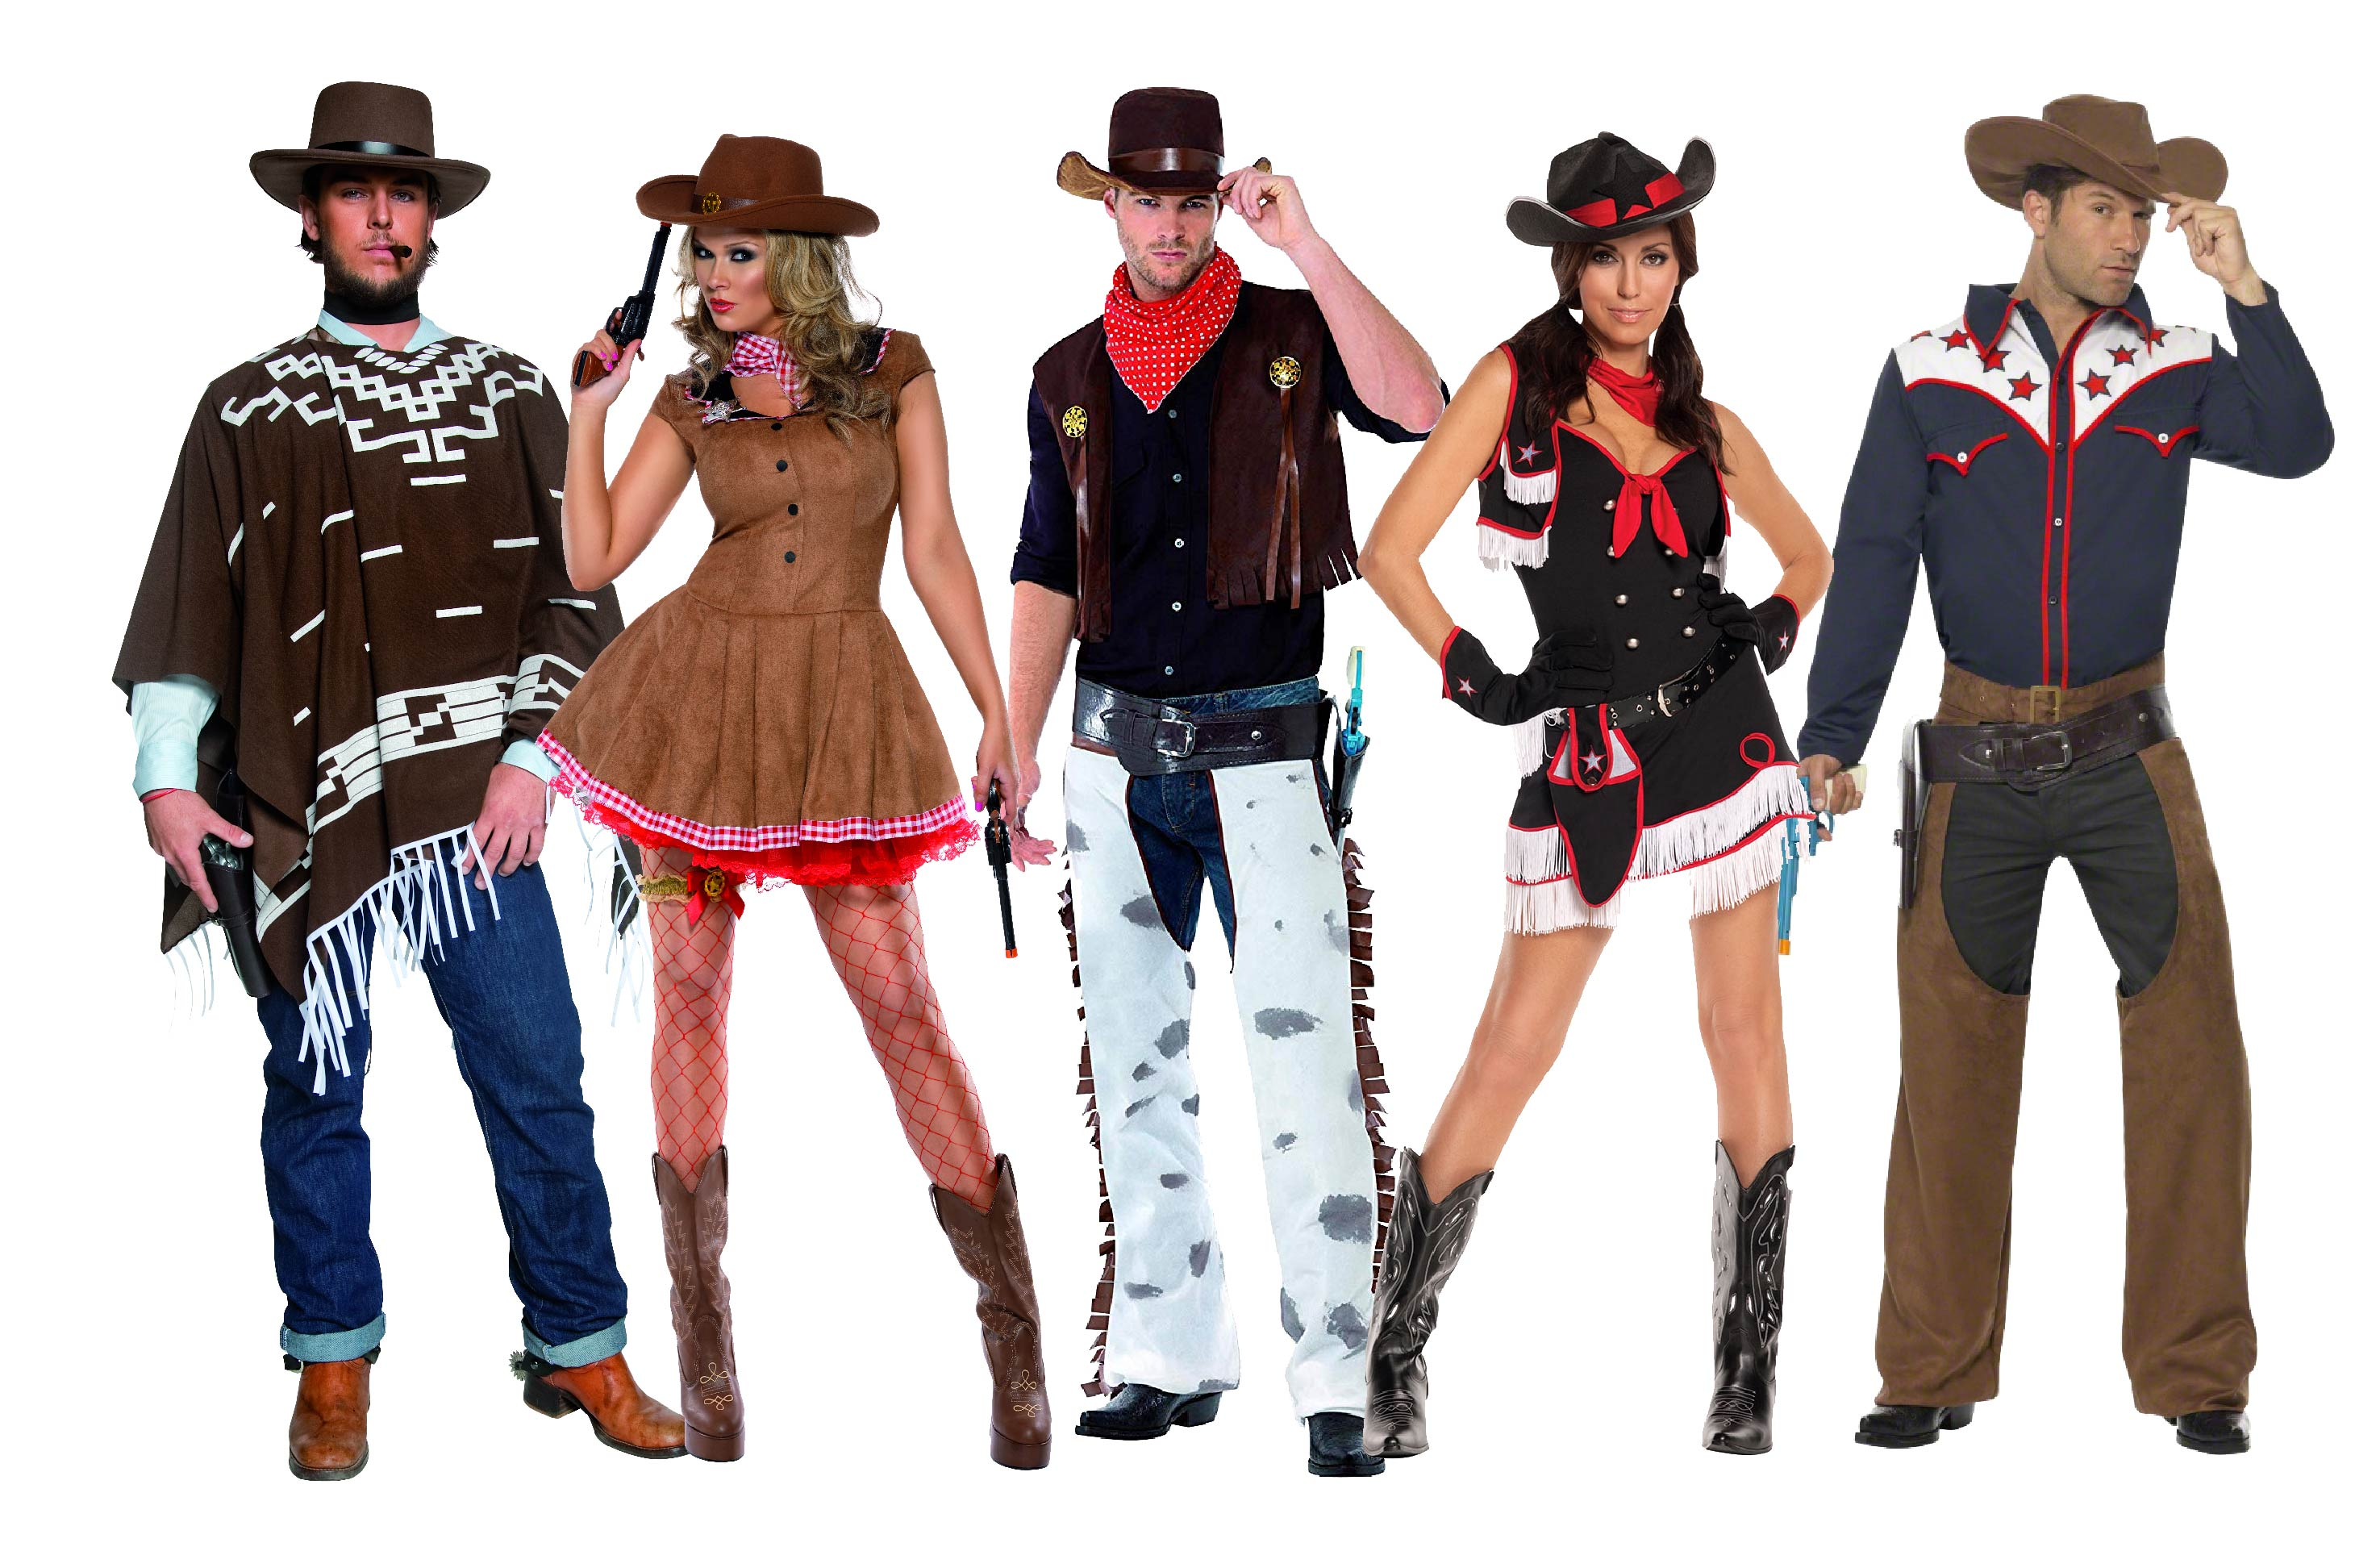 Group fancy dress of Cowboy and Cowgirl costumes.